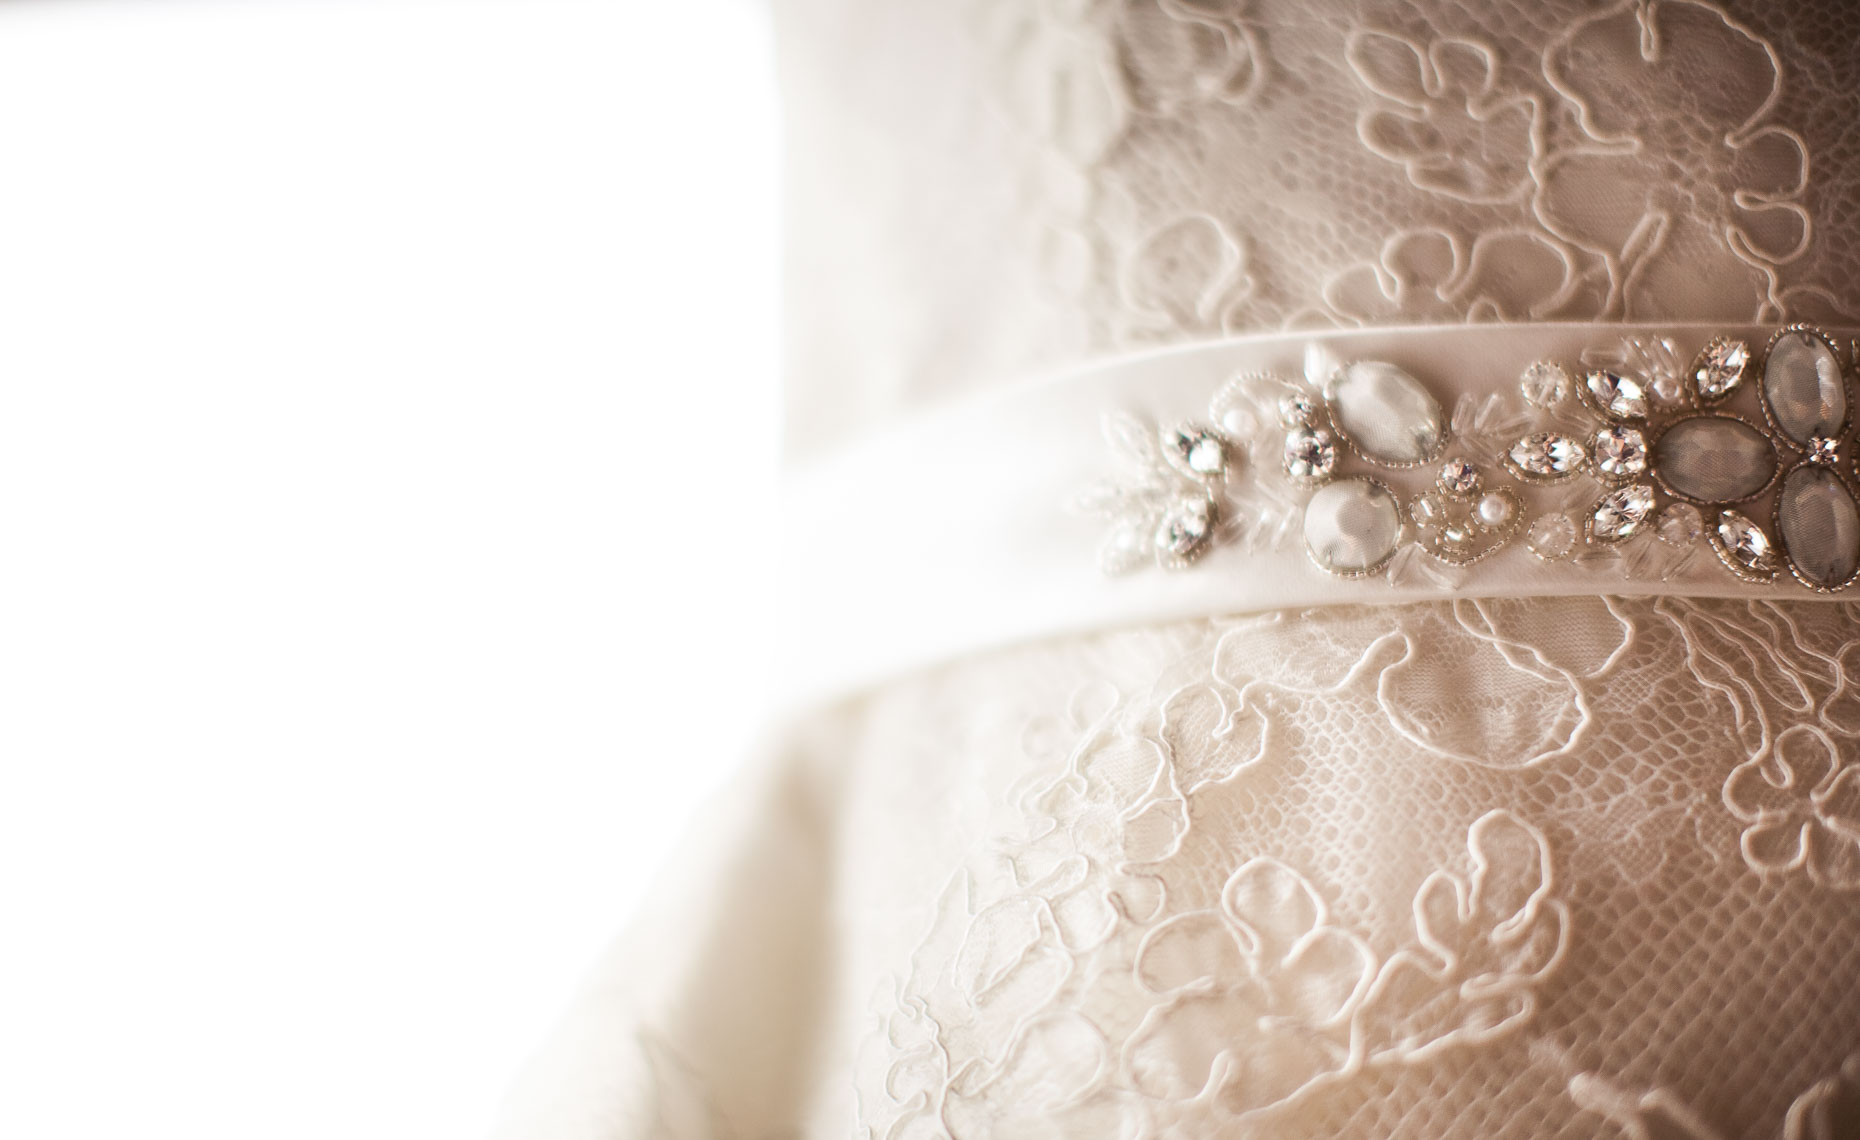 Wedding dress jeweled belt detail